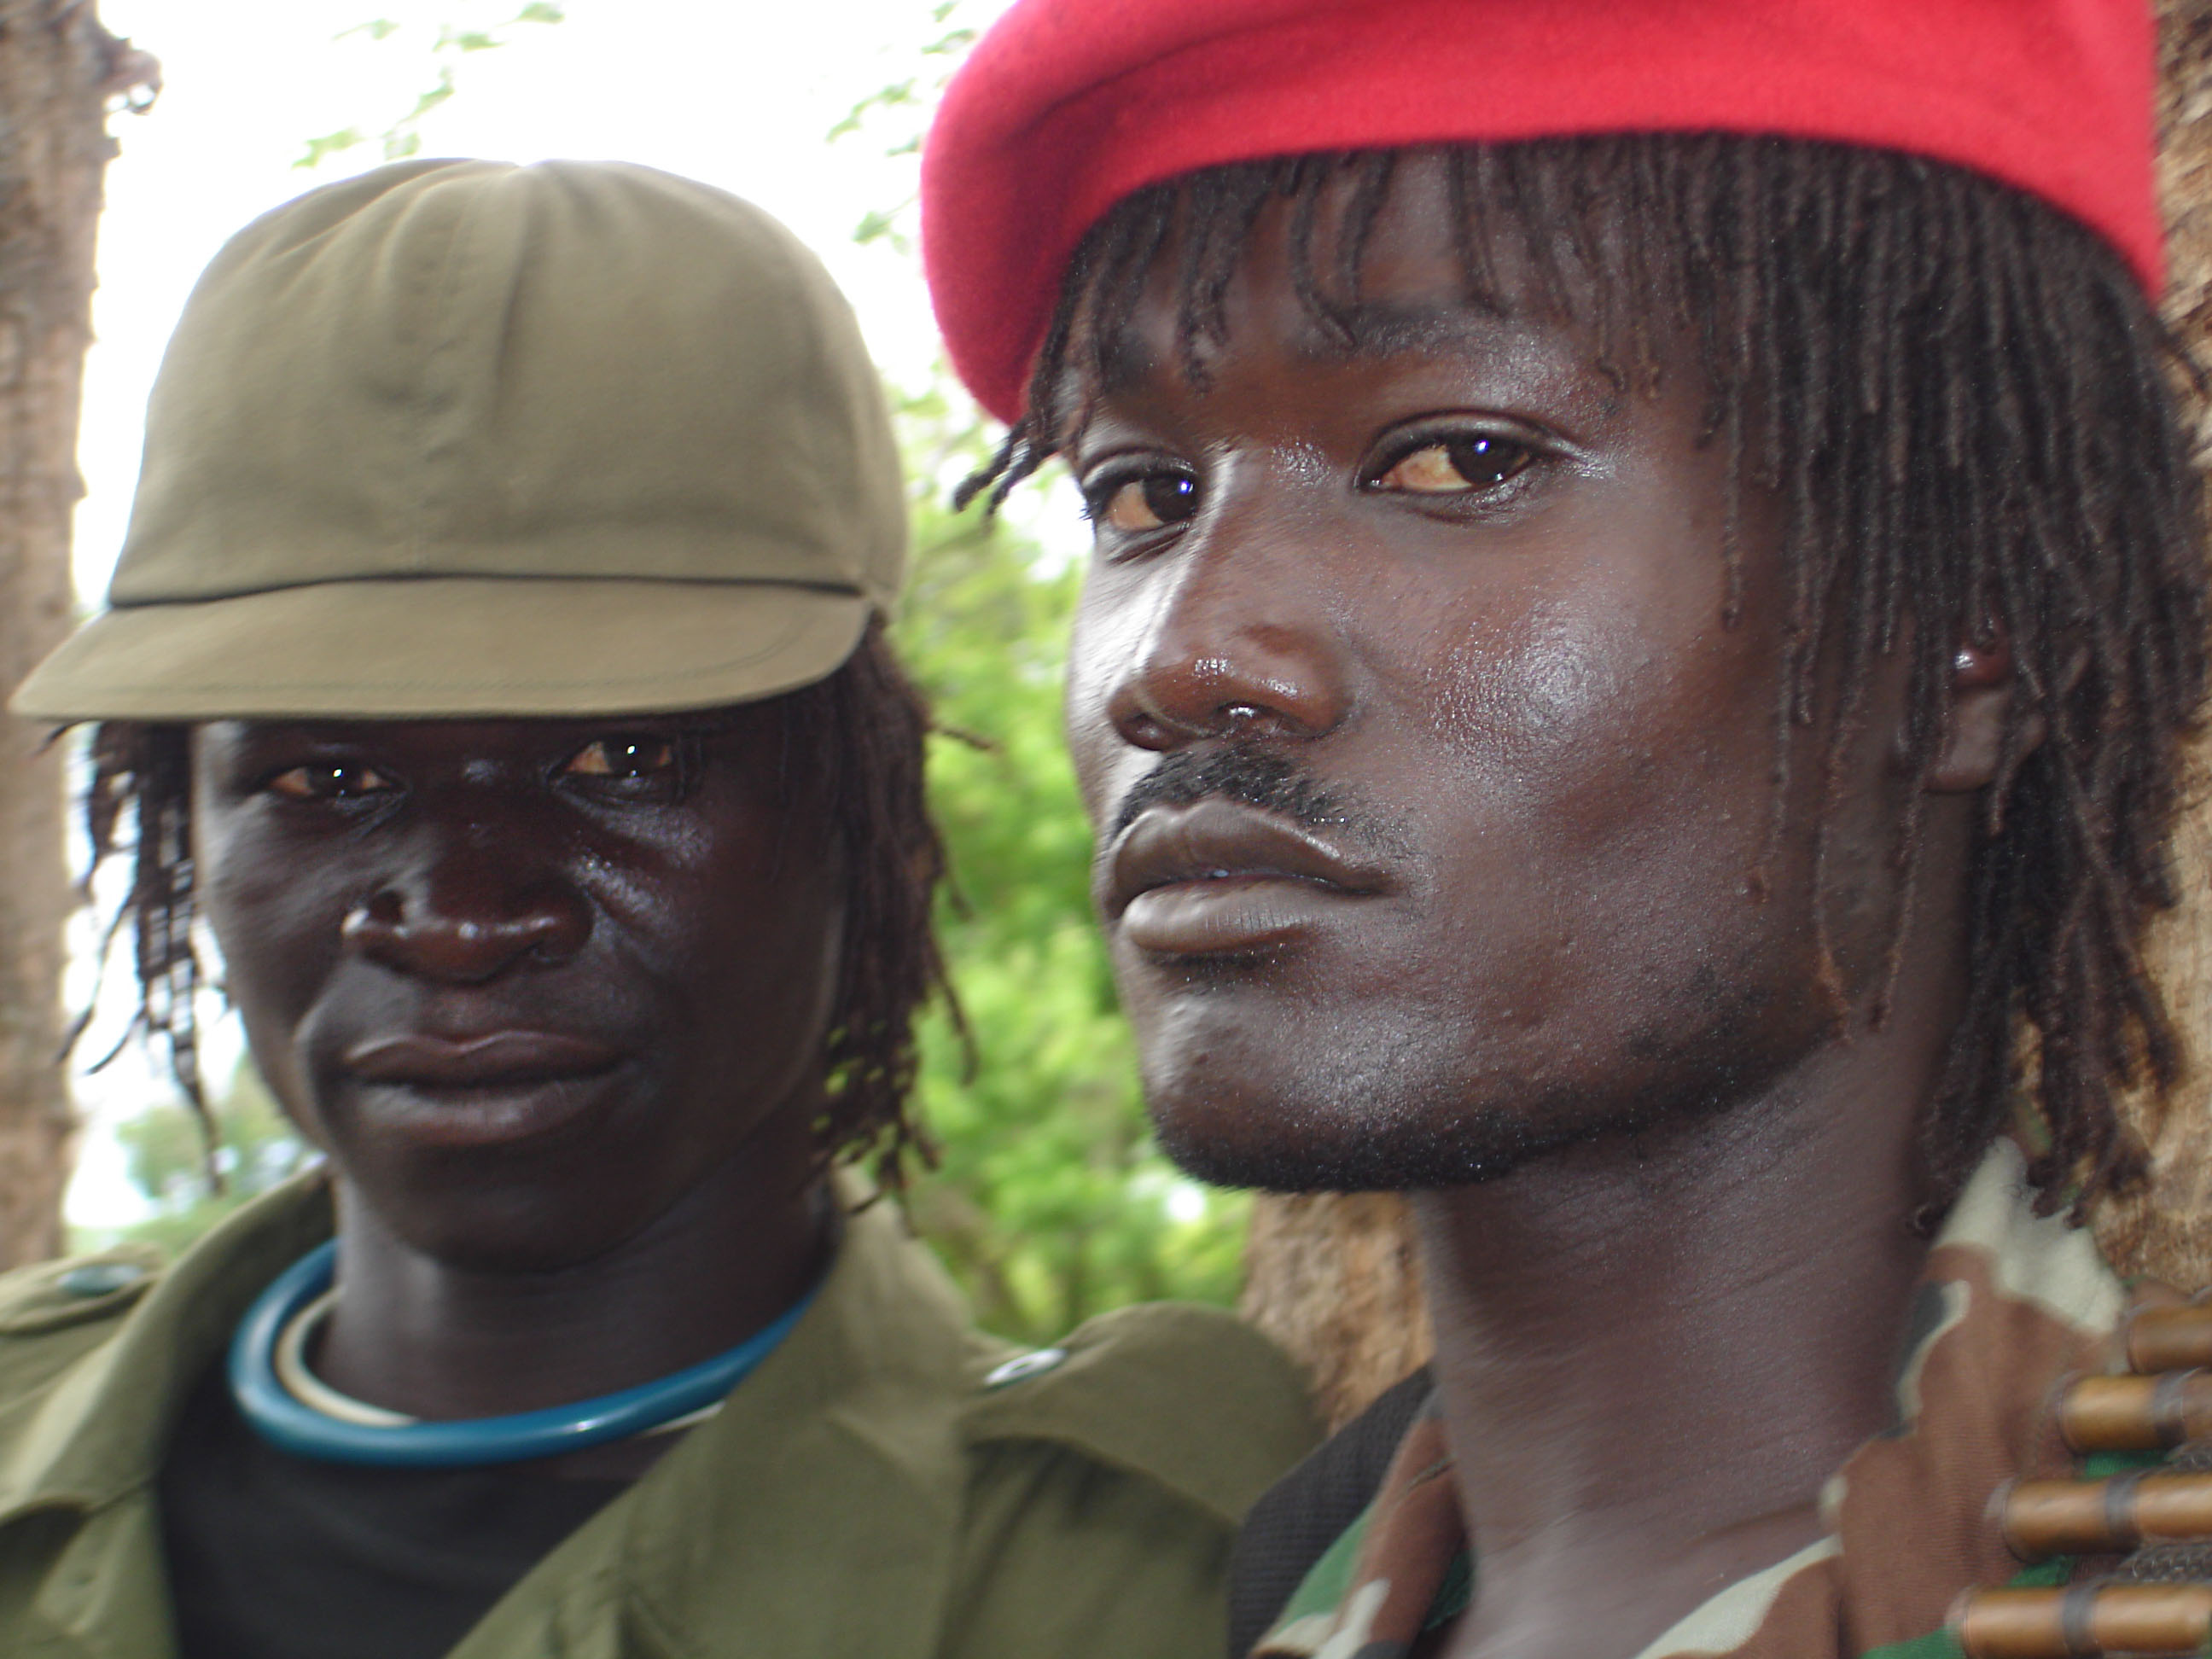 Two members of the LRA, Rikwangba, Sudan, April 2007.